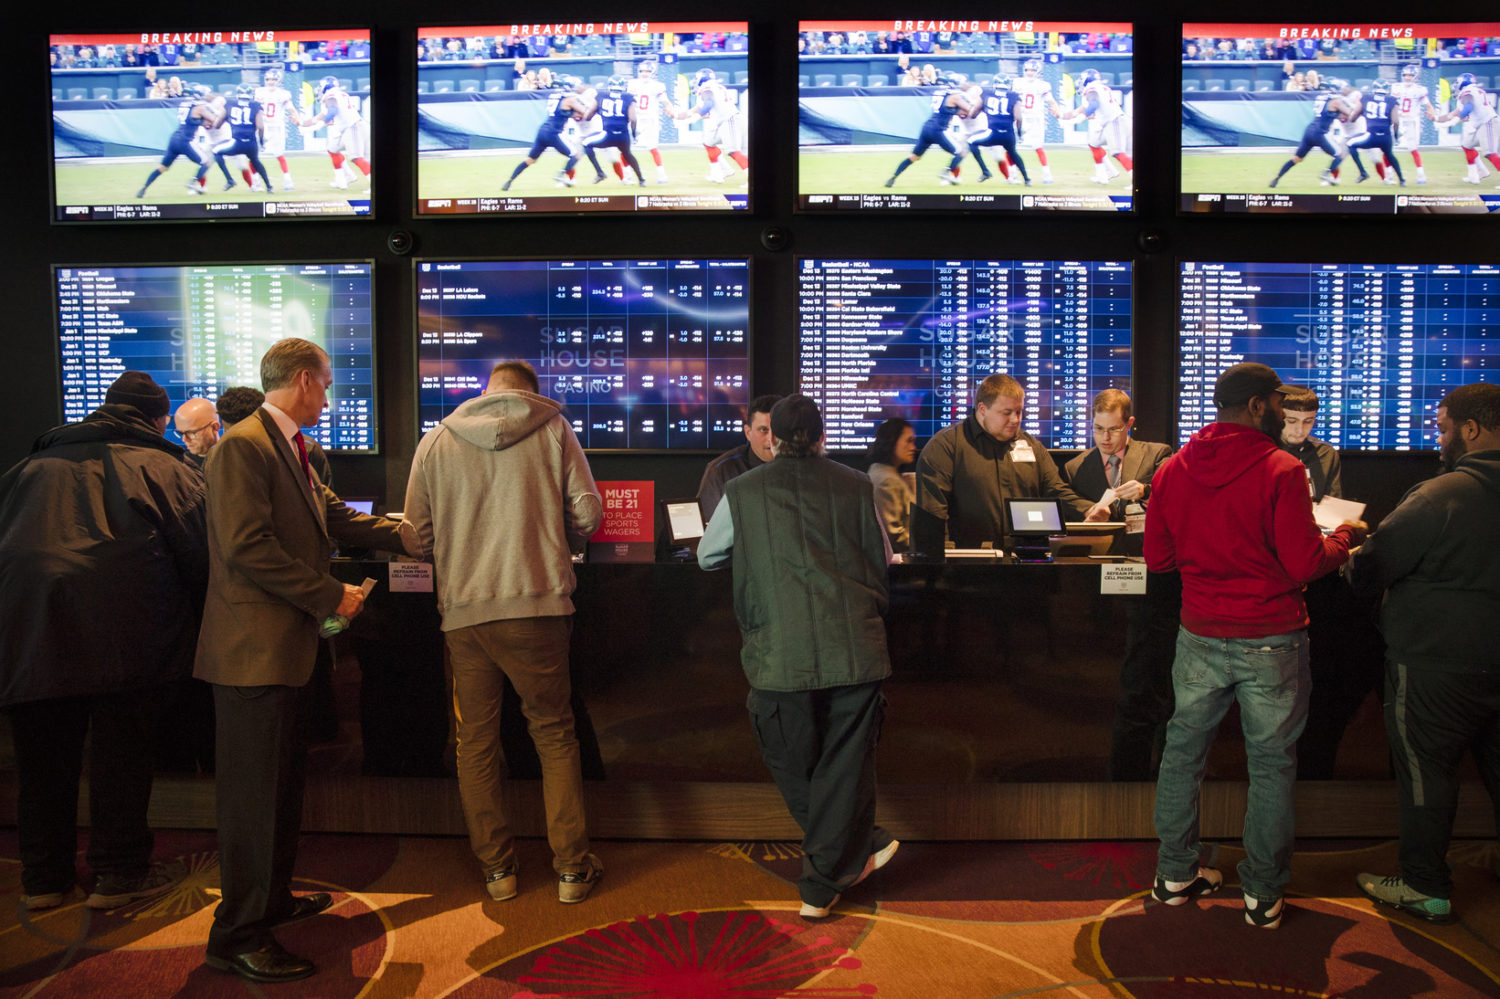 Sports Betting Could Begin In D.C. By Nationals' Opening Day | DCist